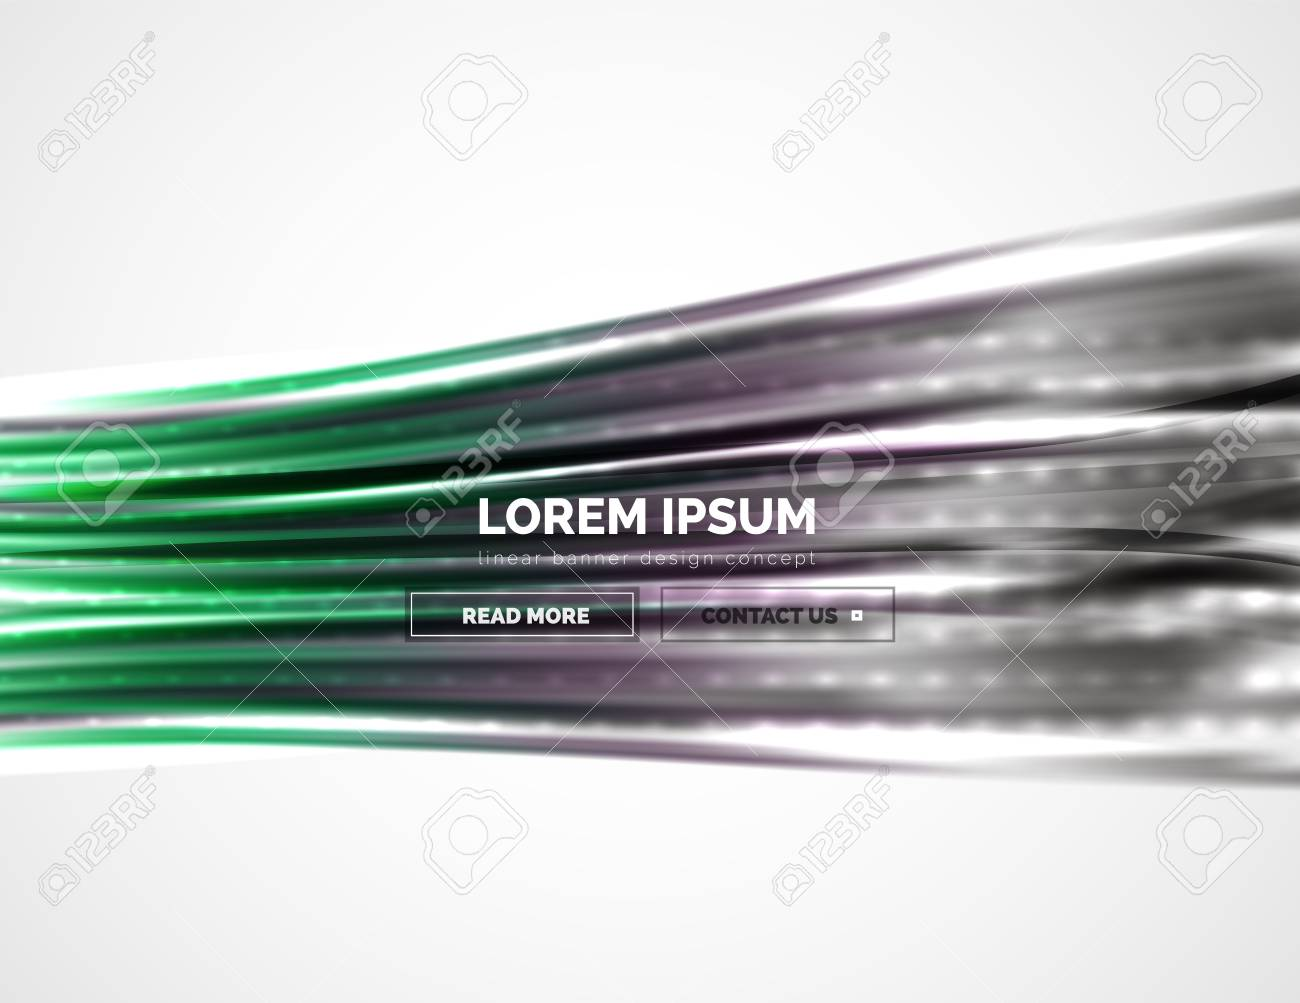 Gordijn Wave Brush Shiny Metallic Wave Curtain Abstract Background Vector